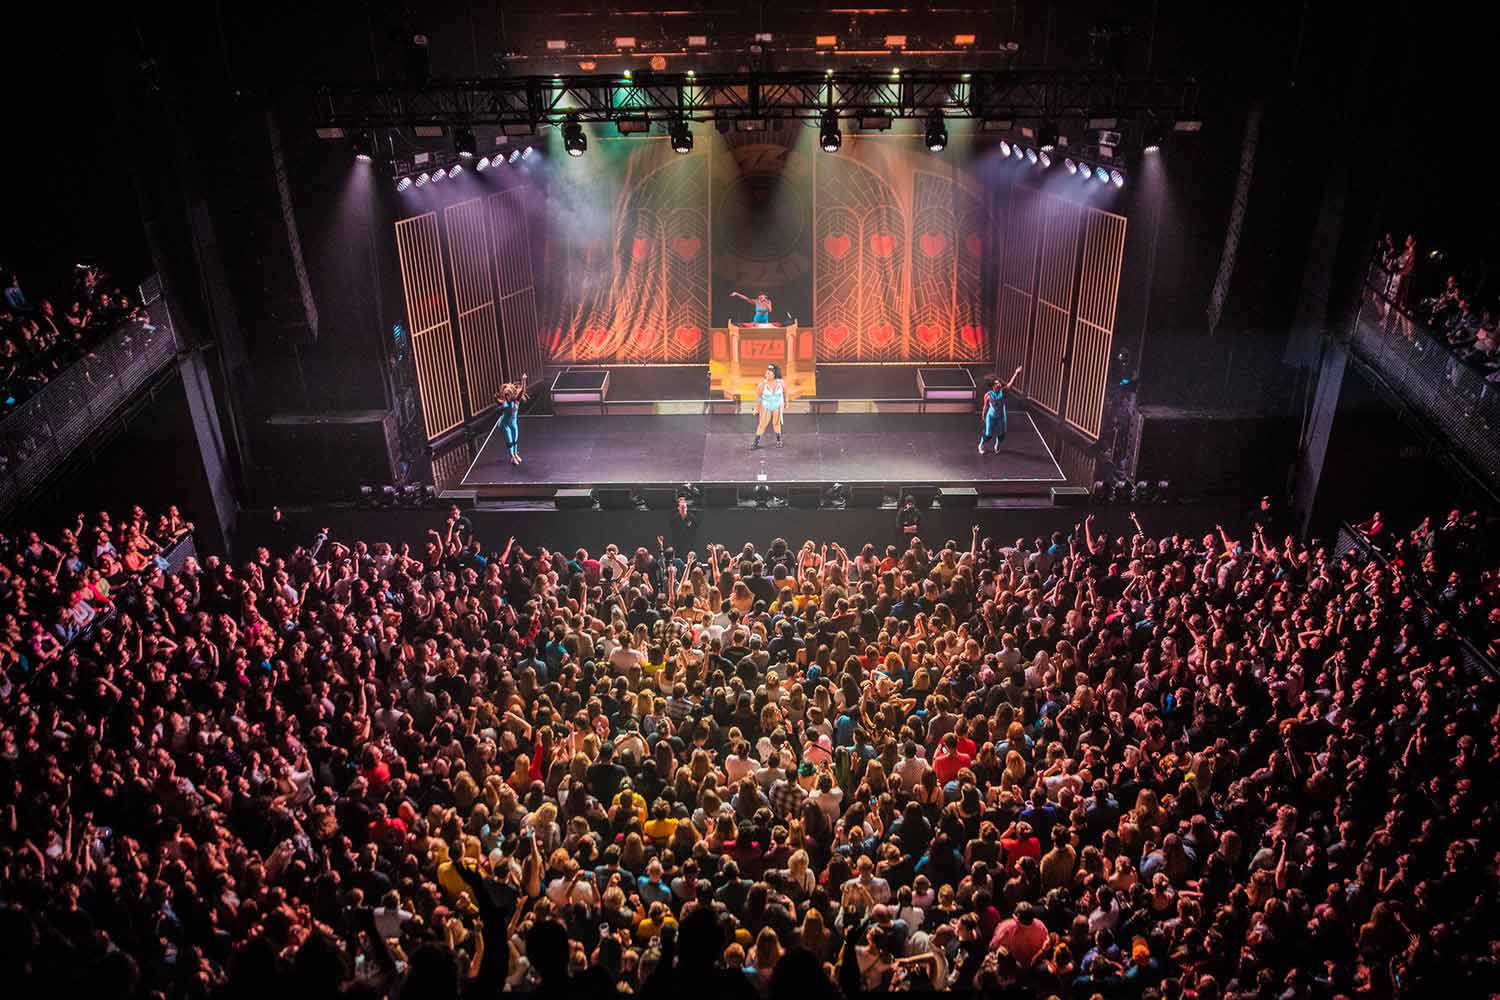 The crowd at The Sylvee during Lizzo's performance on October 10, 2019.